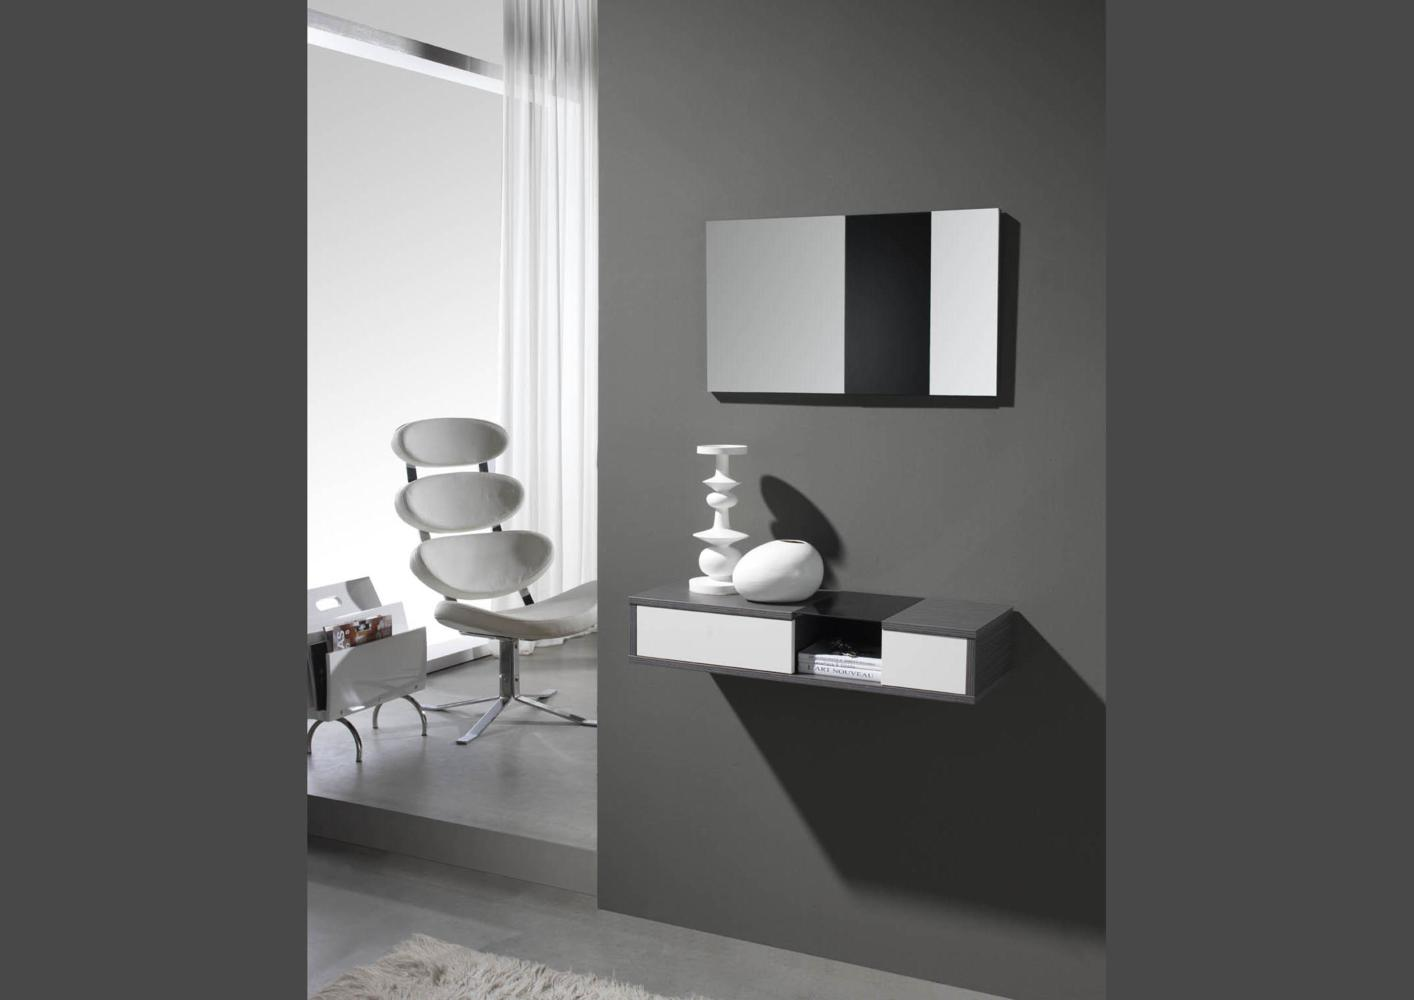 acheter votre compo meuble d 39 entr e contemporain chez simeuble. Black Bedroom Furniture Sets. Home Design Ideas